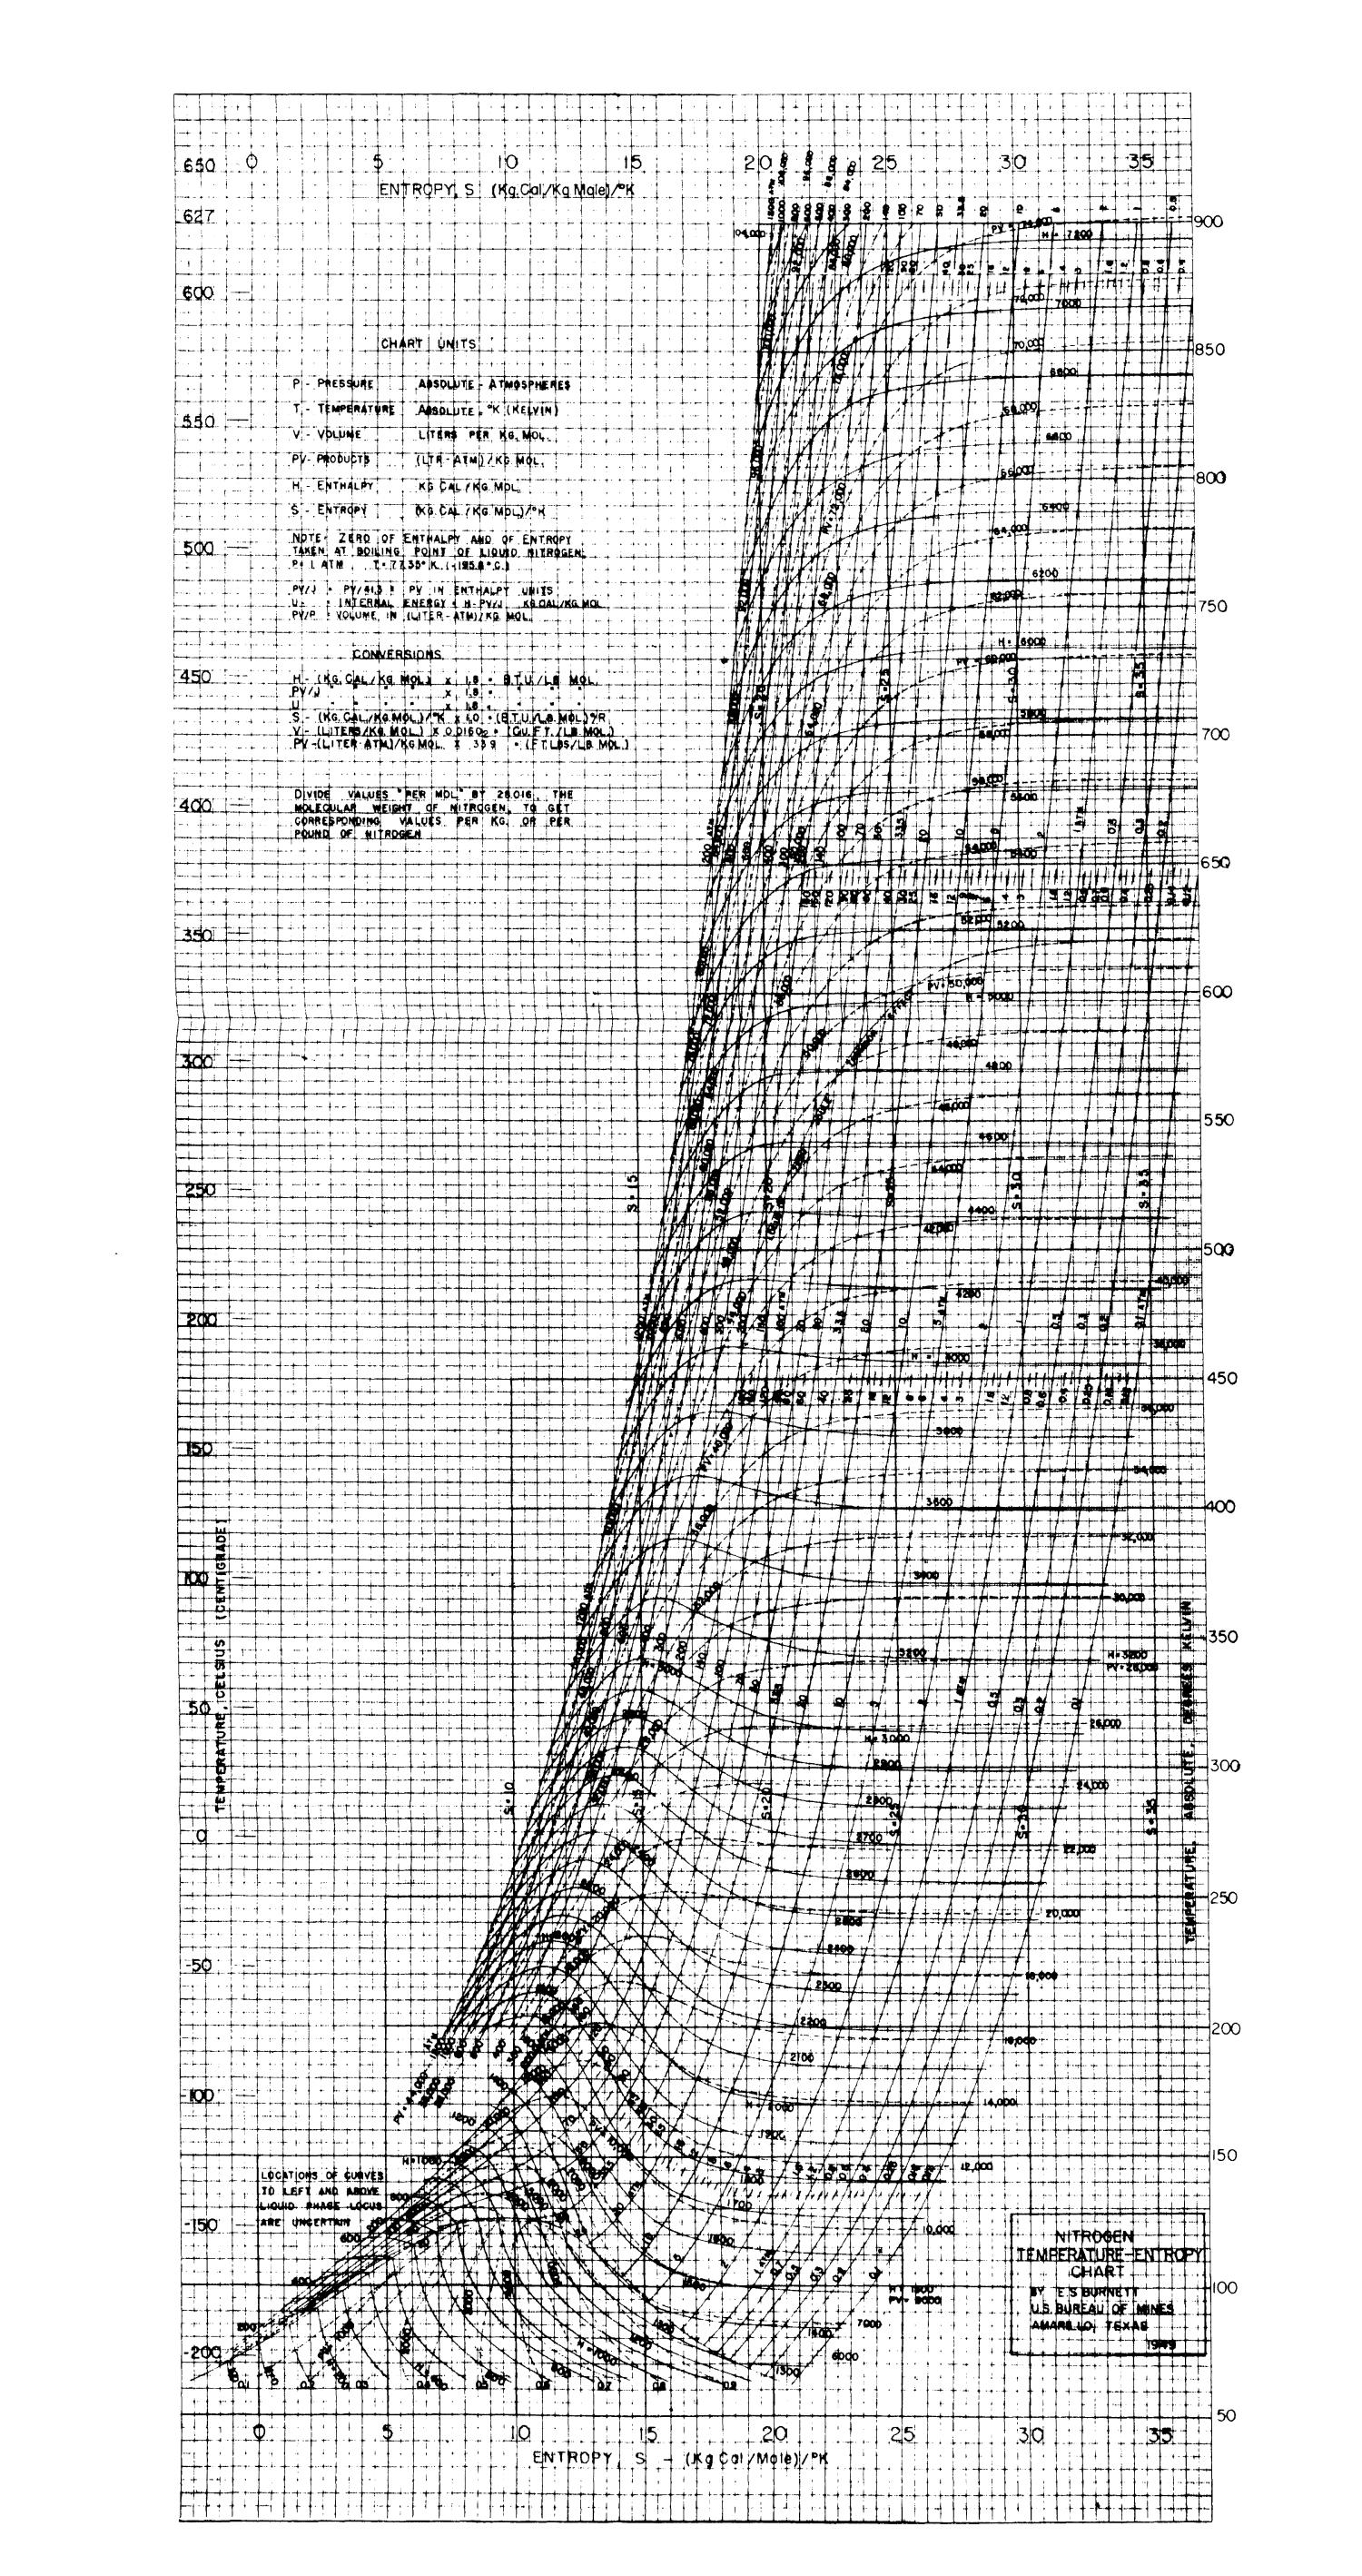 Temperature Entropy Chart Of Thermodynamic Properties Of Nitrogen - Page 11